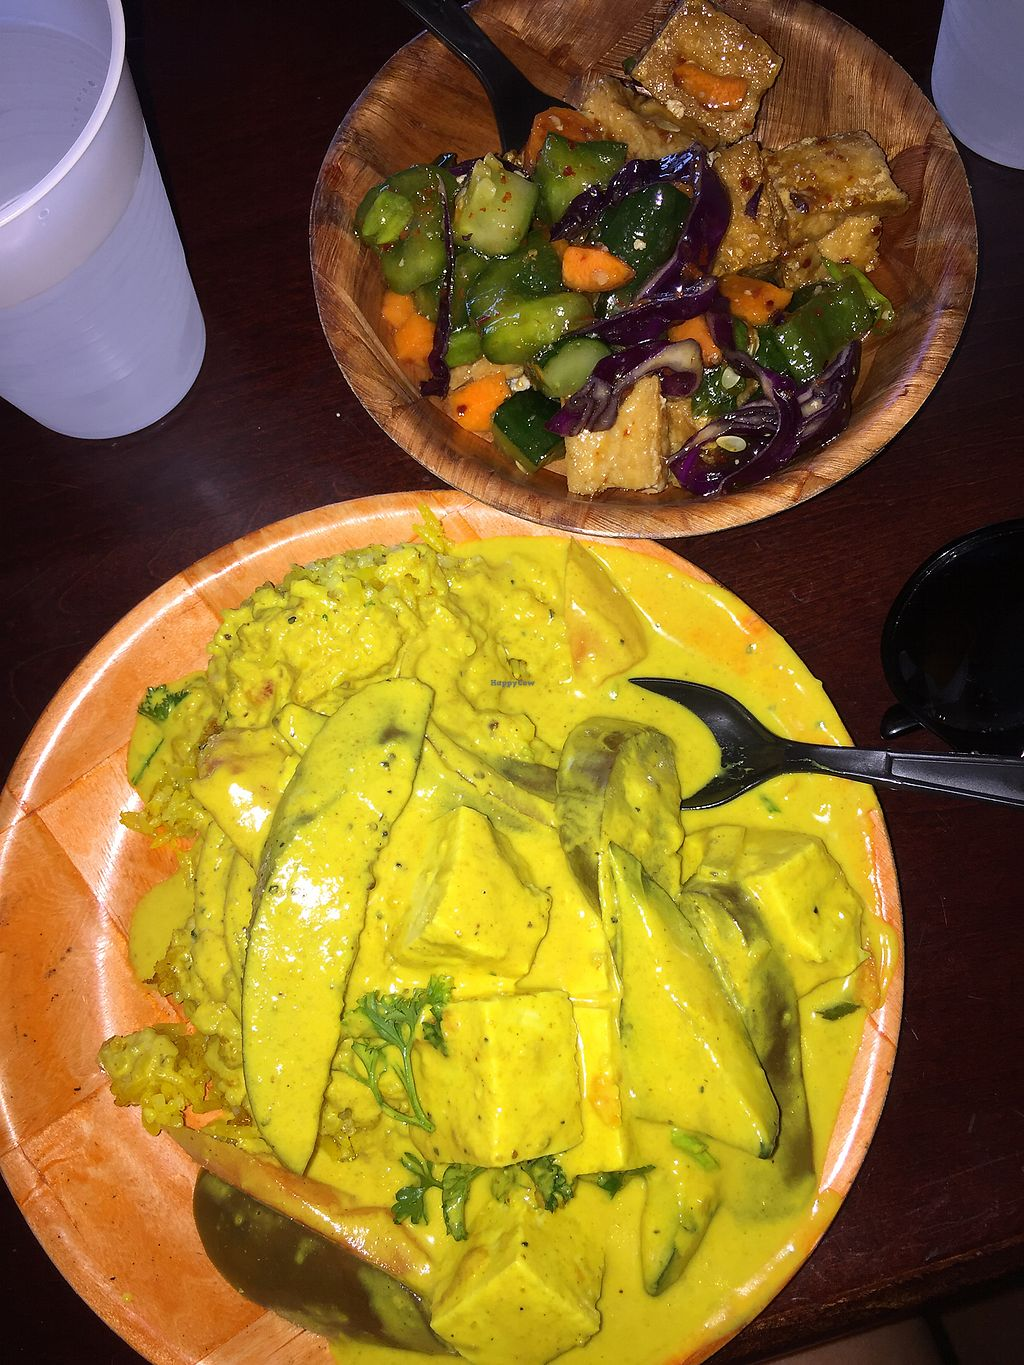 """Photo of Da Spot  by <a href=""""/members/profile/cmlove4"""">cmlove4</a> <br/>The coconut yellow curry was AMAZING  <br/> January 4, 2018  - <a href='/contact/abuse/image/30393/342805'>Report</a>"""